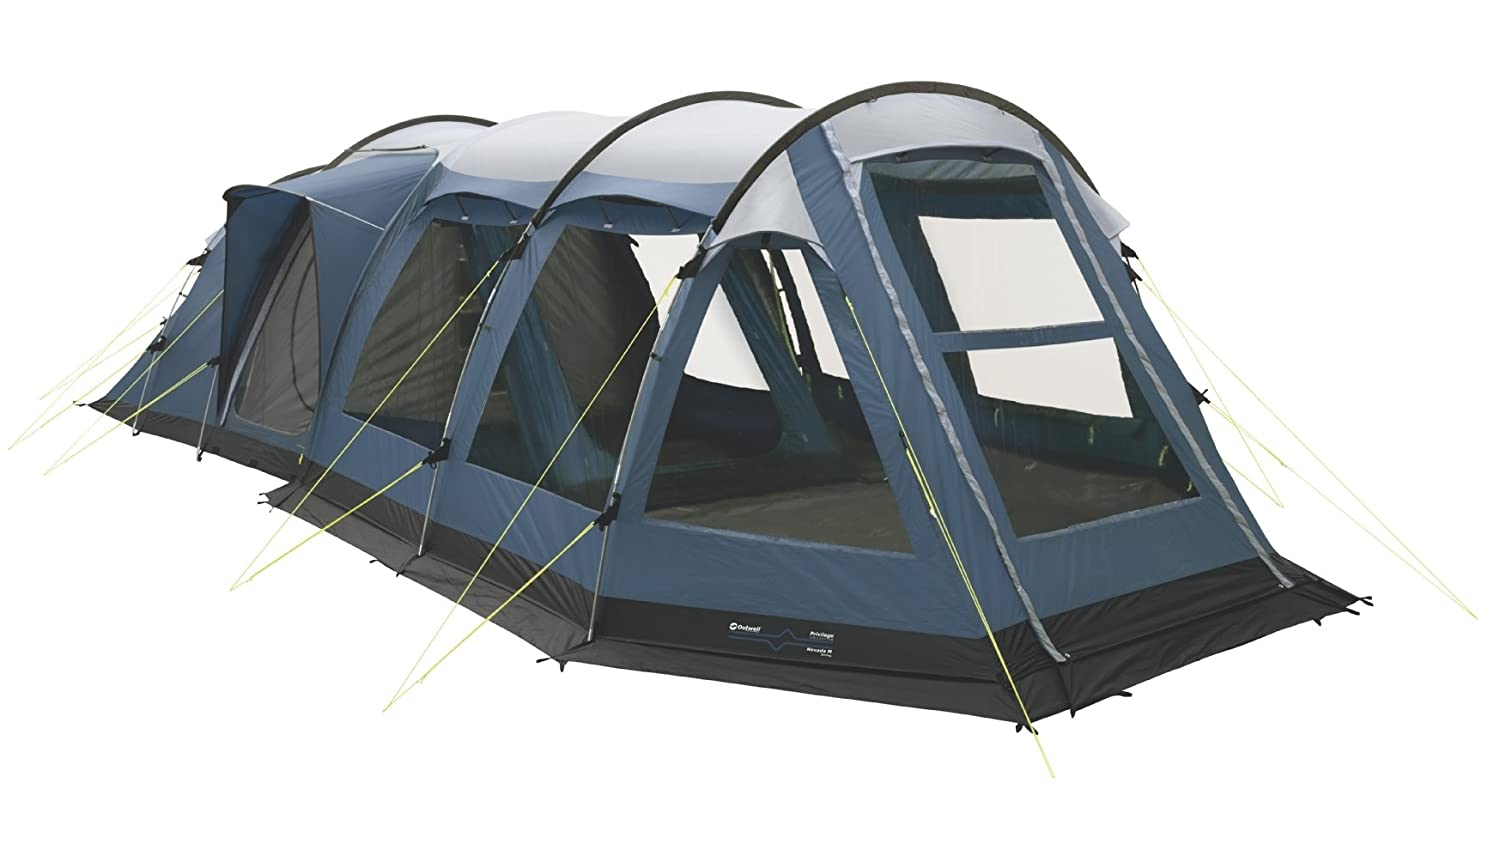 Outwell Nevada M tent accessories grey/blue 2015 tent material Amazon.co.uk Shoes u0026 Bags  sc 1 st  Amazon UK & Outwell Nevada M tent accessories grey/blue 2015 tent material ...